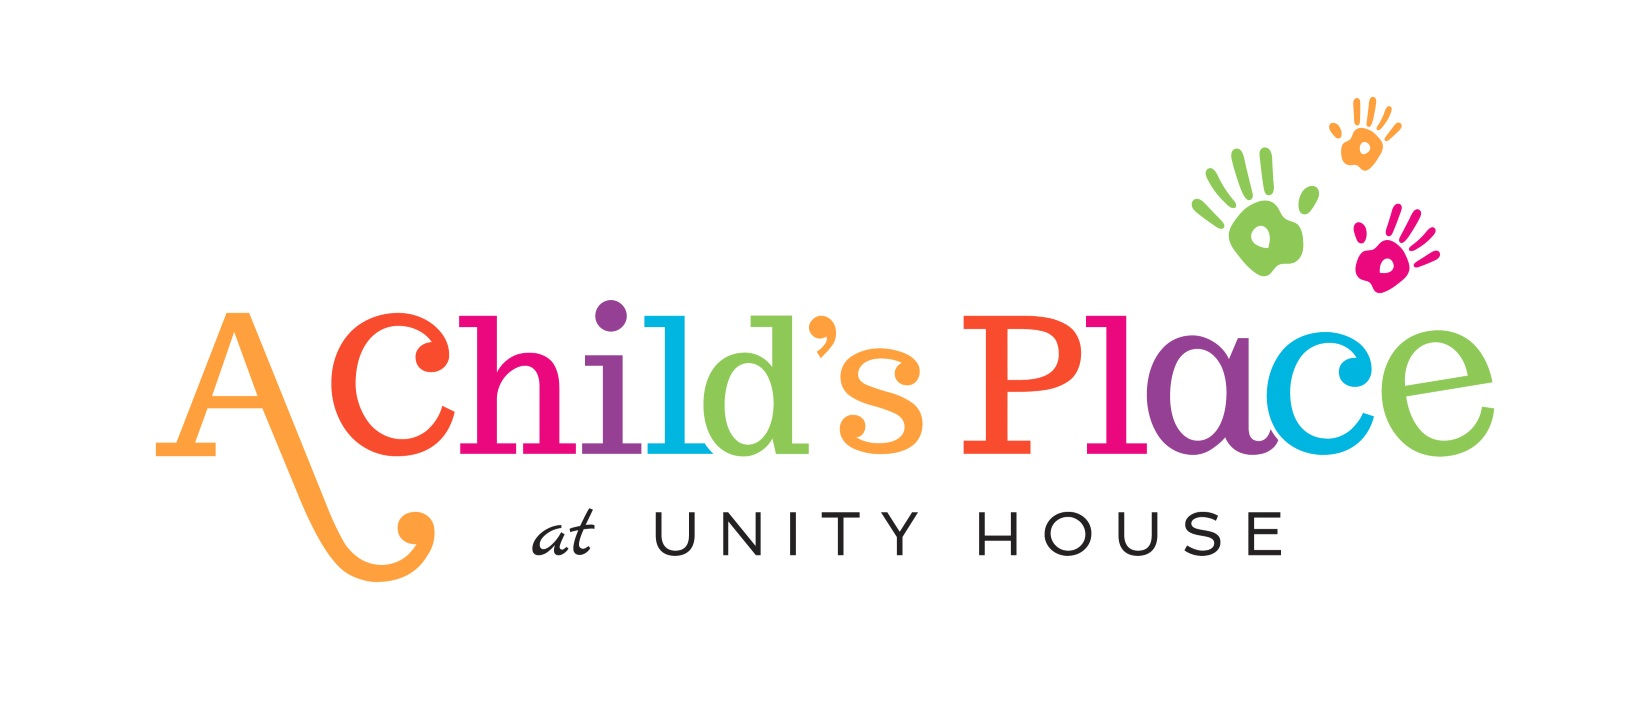 Dine to Donate and help A Child's Place at Unity House